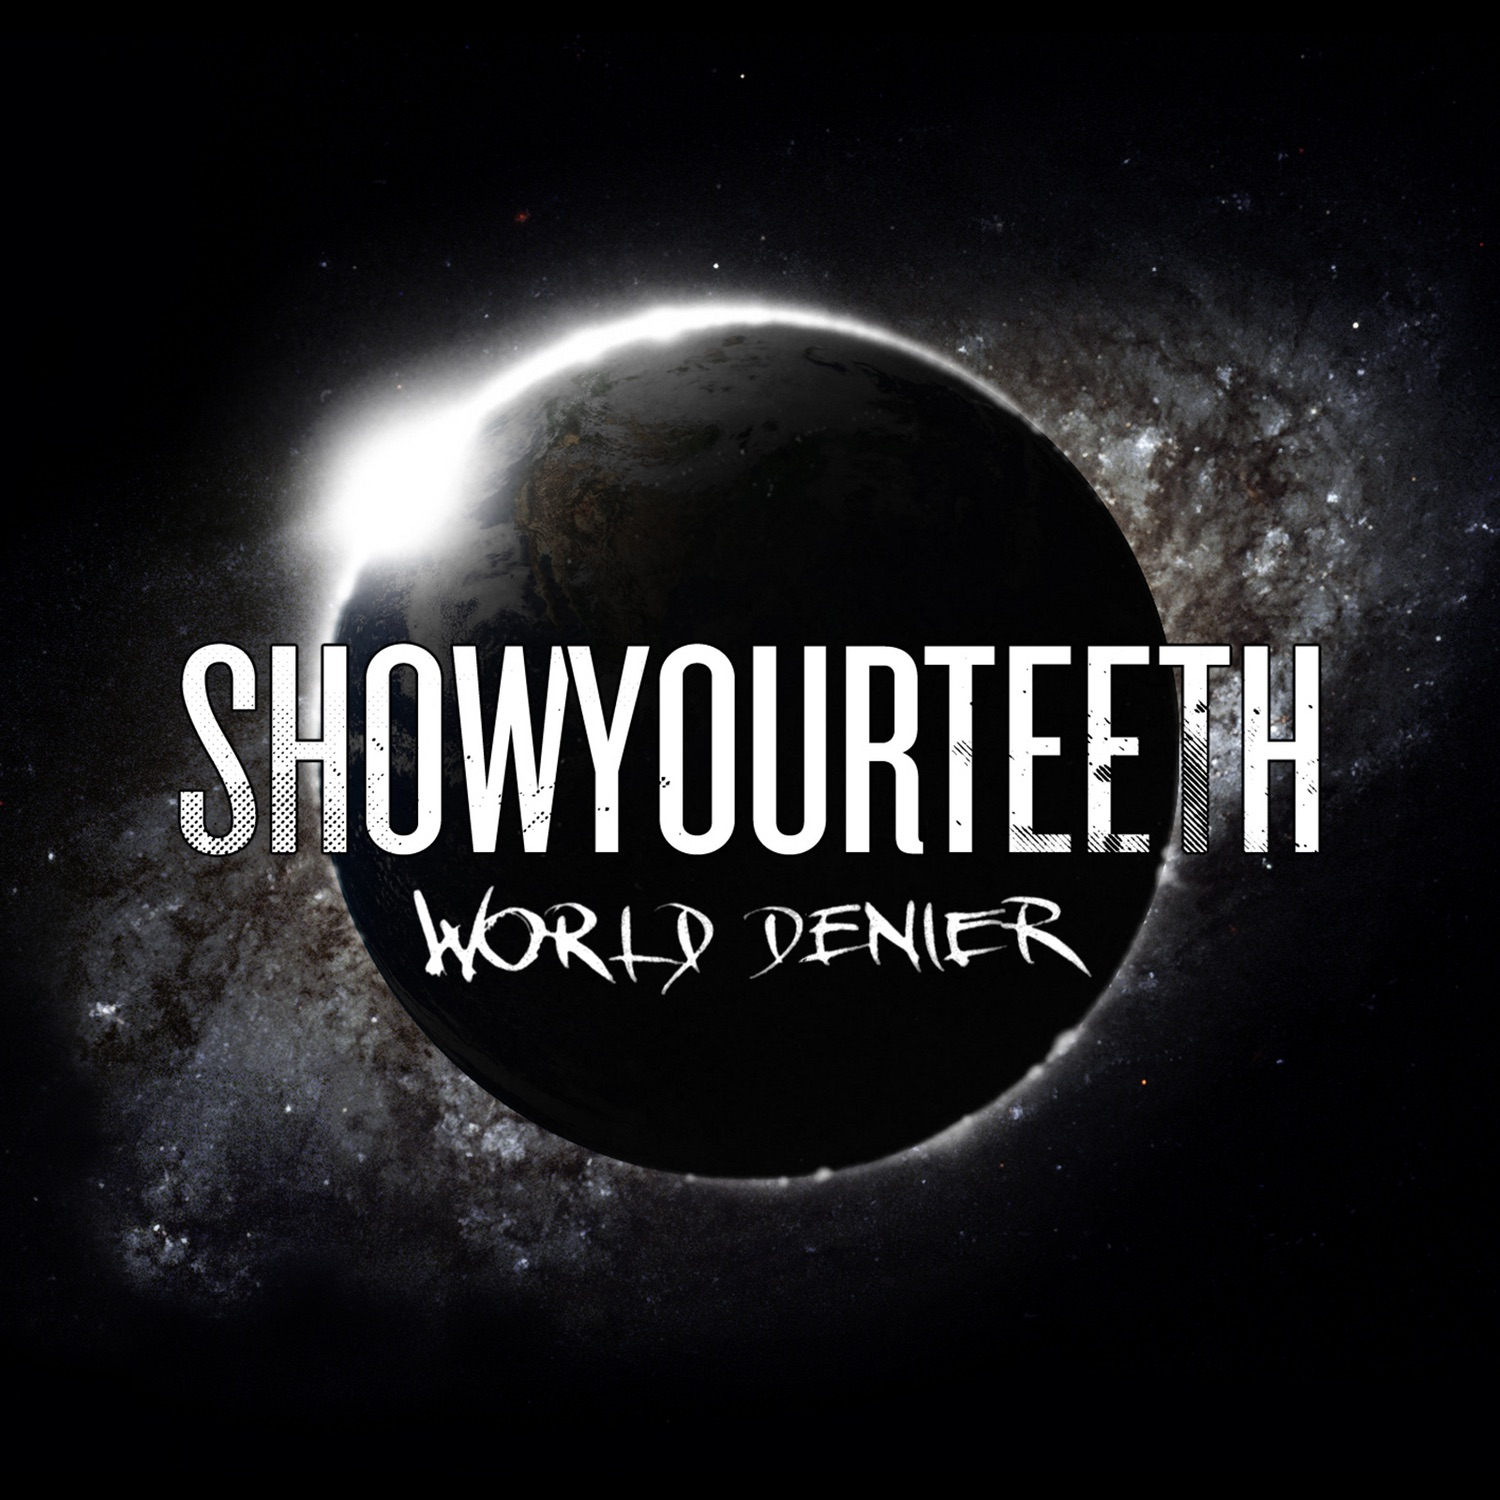 Showyourteeth - World Denier (2011)